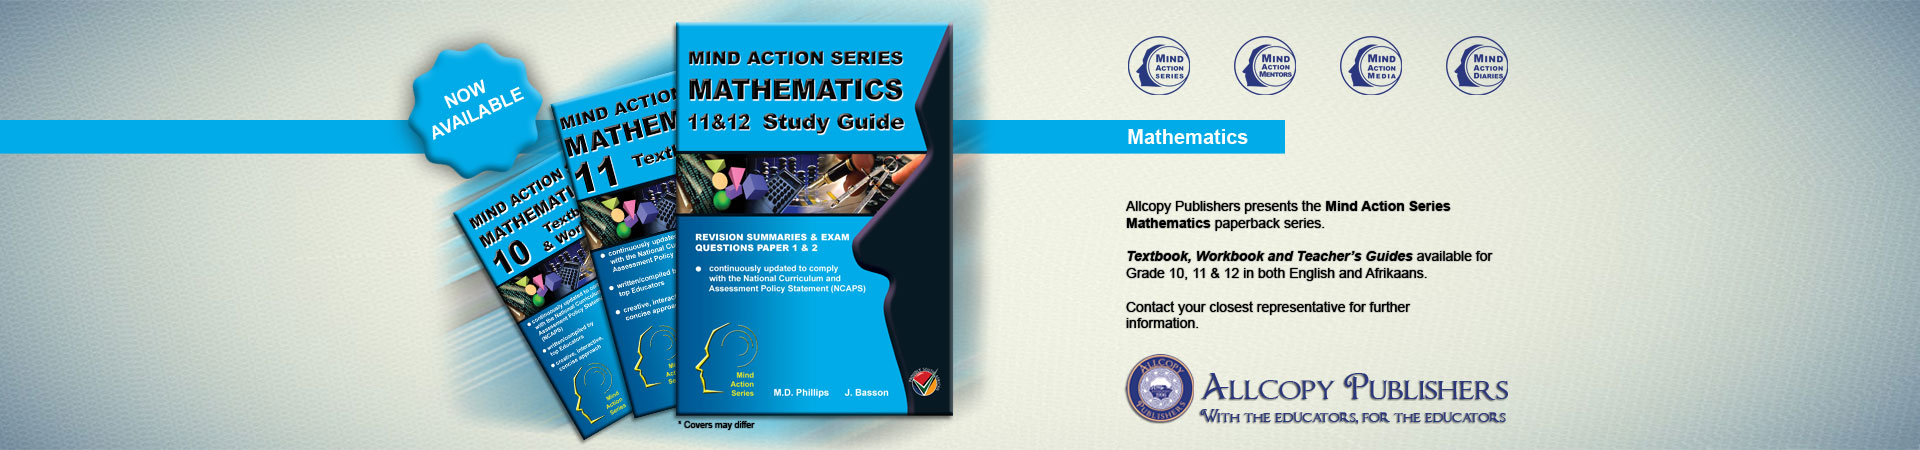 Mind Actions Series Maths